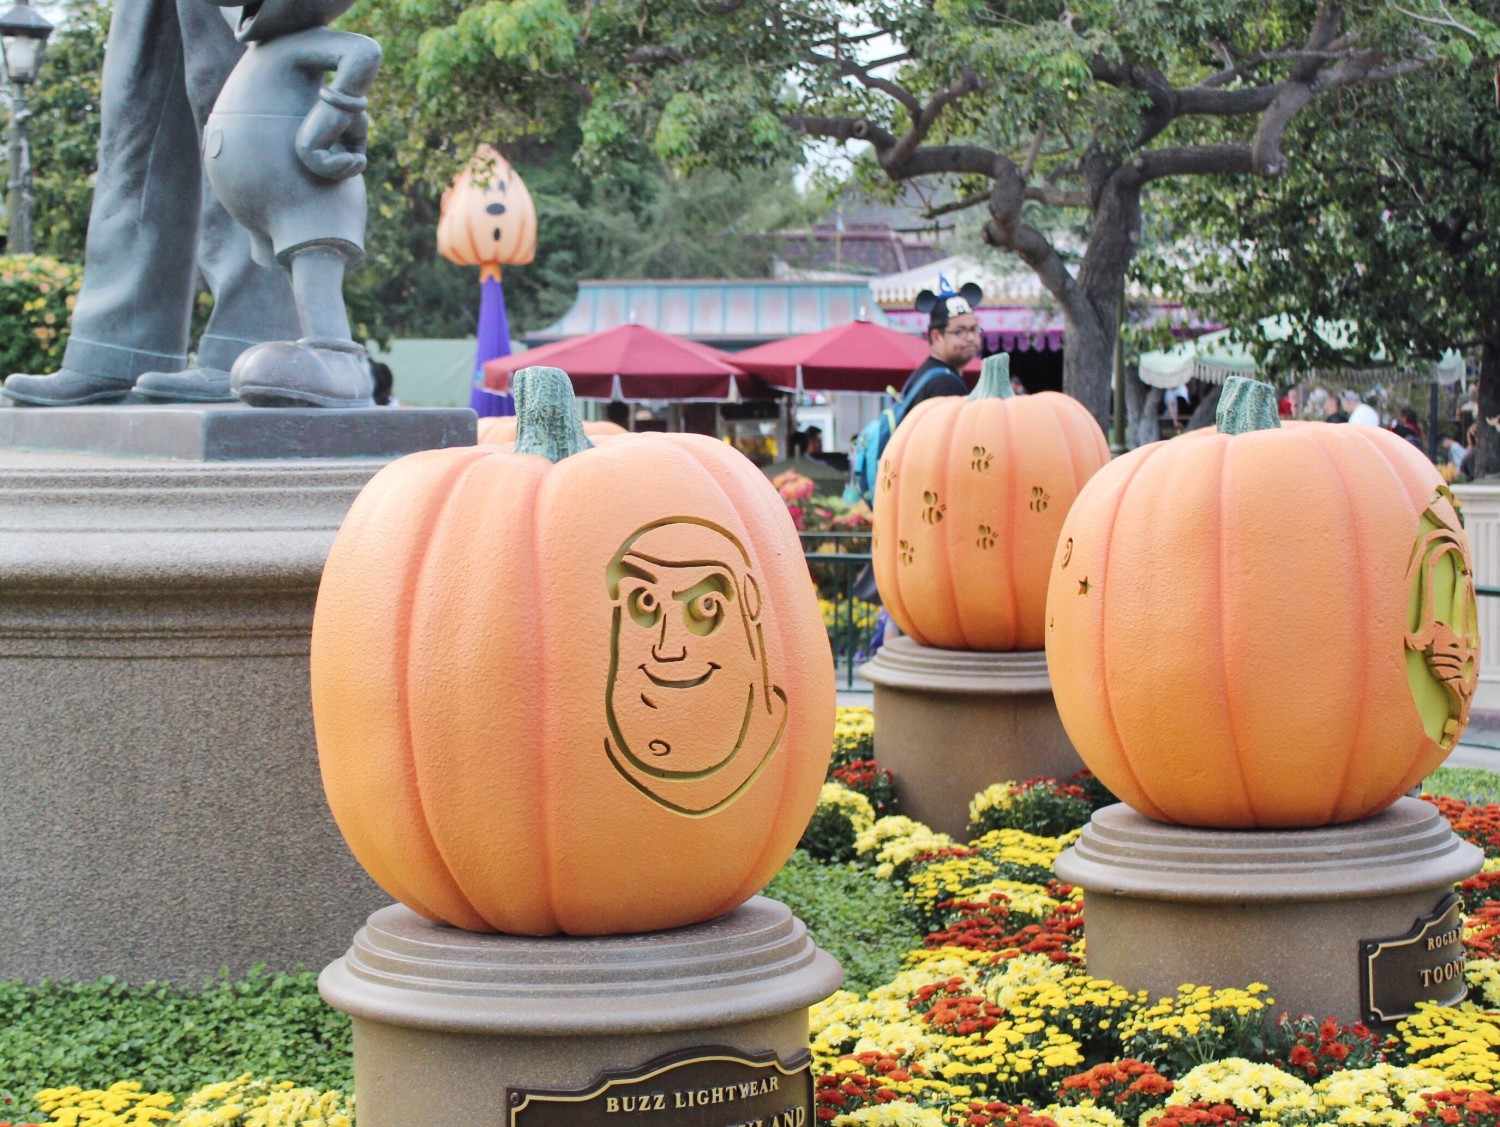 Disneyland Buzz Lightyear Pumpkin